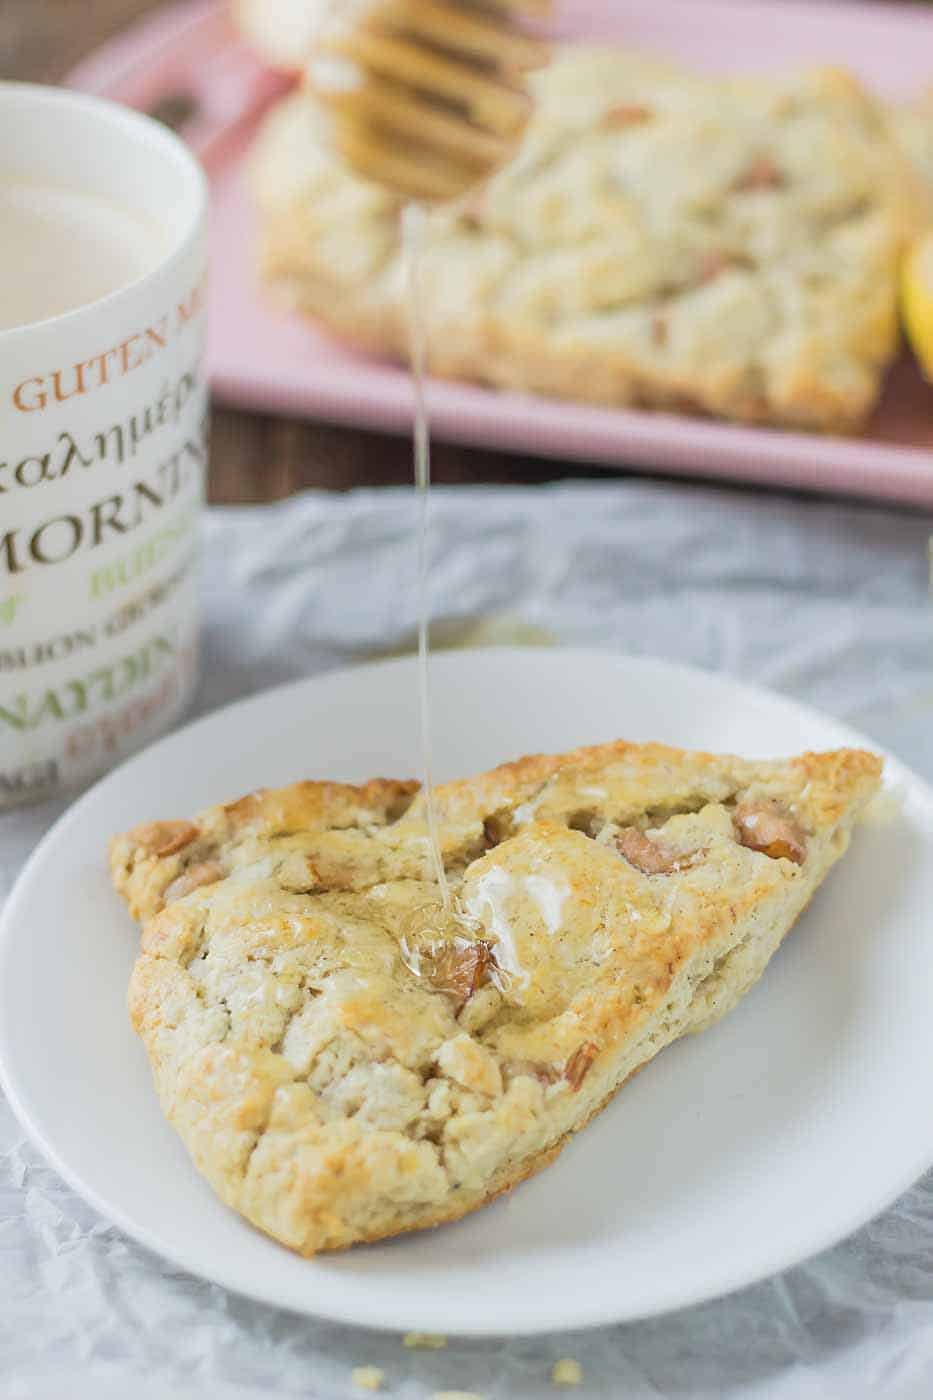 Soft and sweet, with pillows of pear and rich blue cheese and a drizzle of honey, these Pear and Blue Cheese Scones are the perfect pair with your morning cup of coffee! | Strawberry Blondie Kitchen